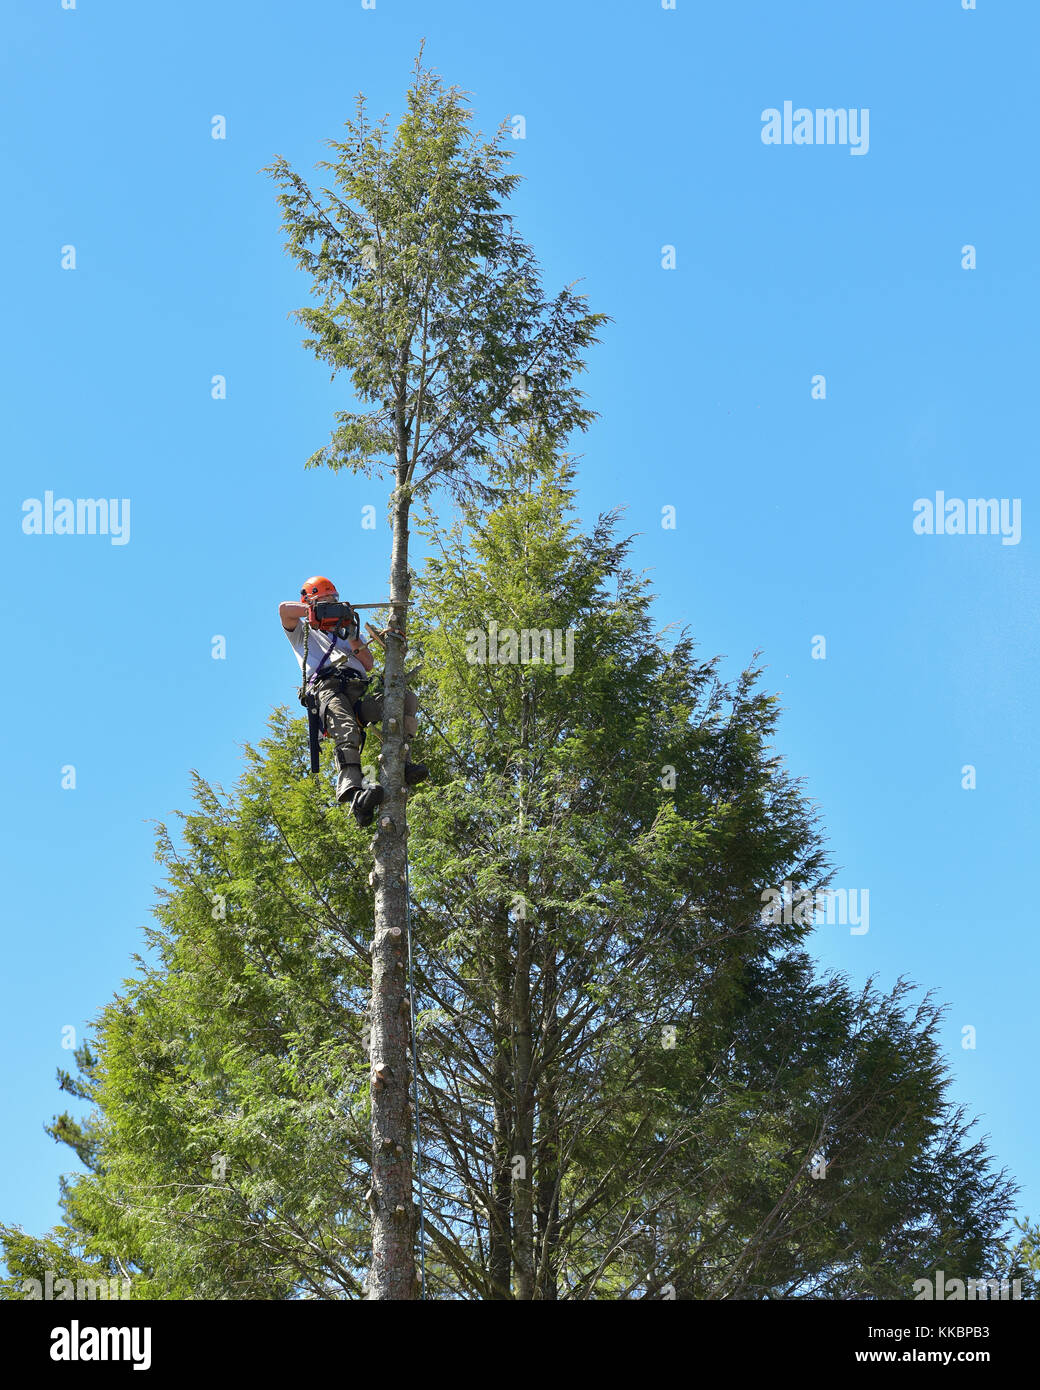 Professional arborist climbing a tall hemlock tree and cutting off the top. - Stock Image